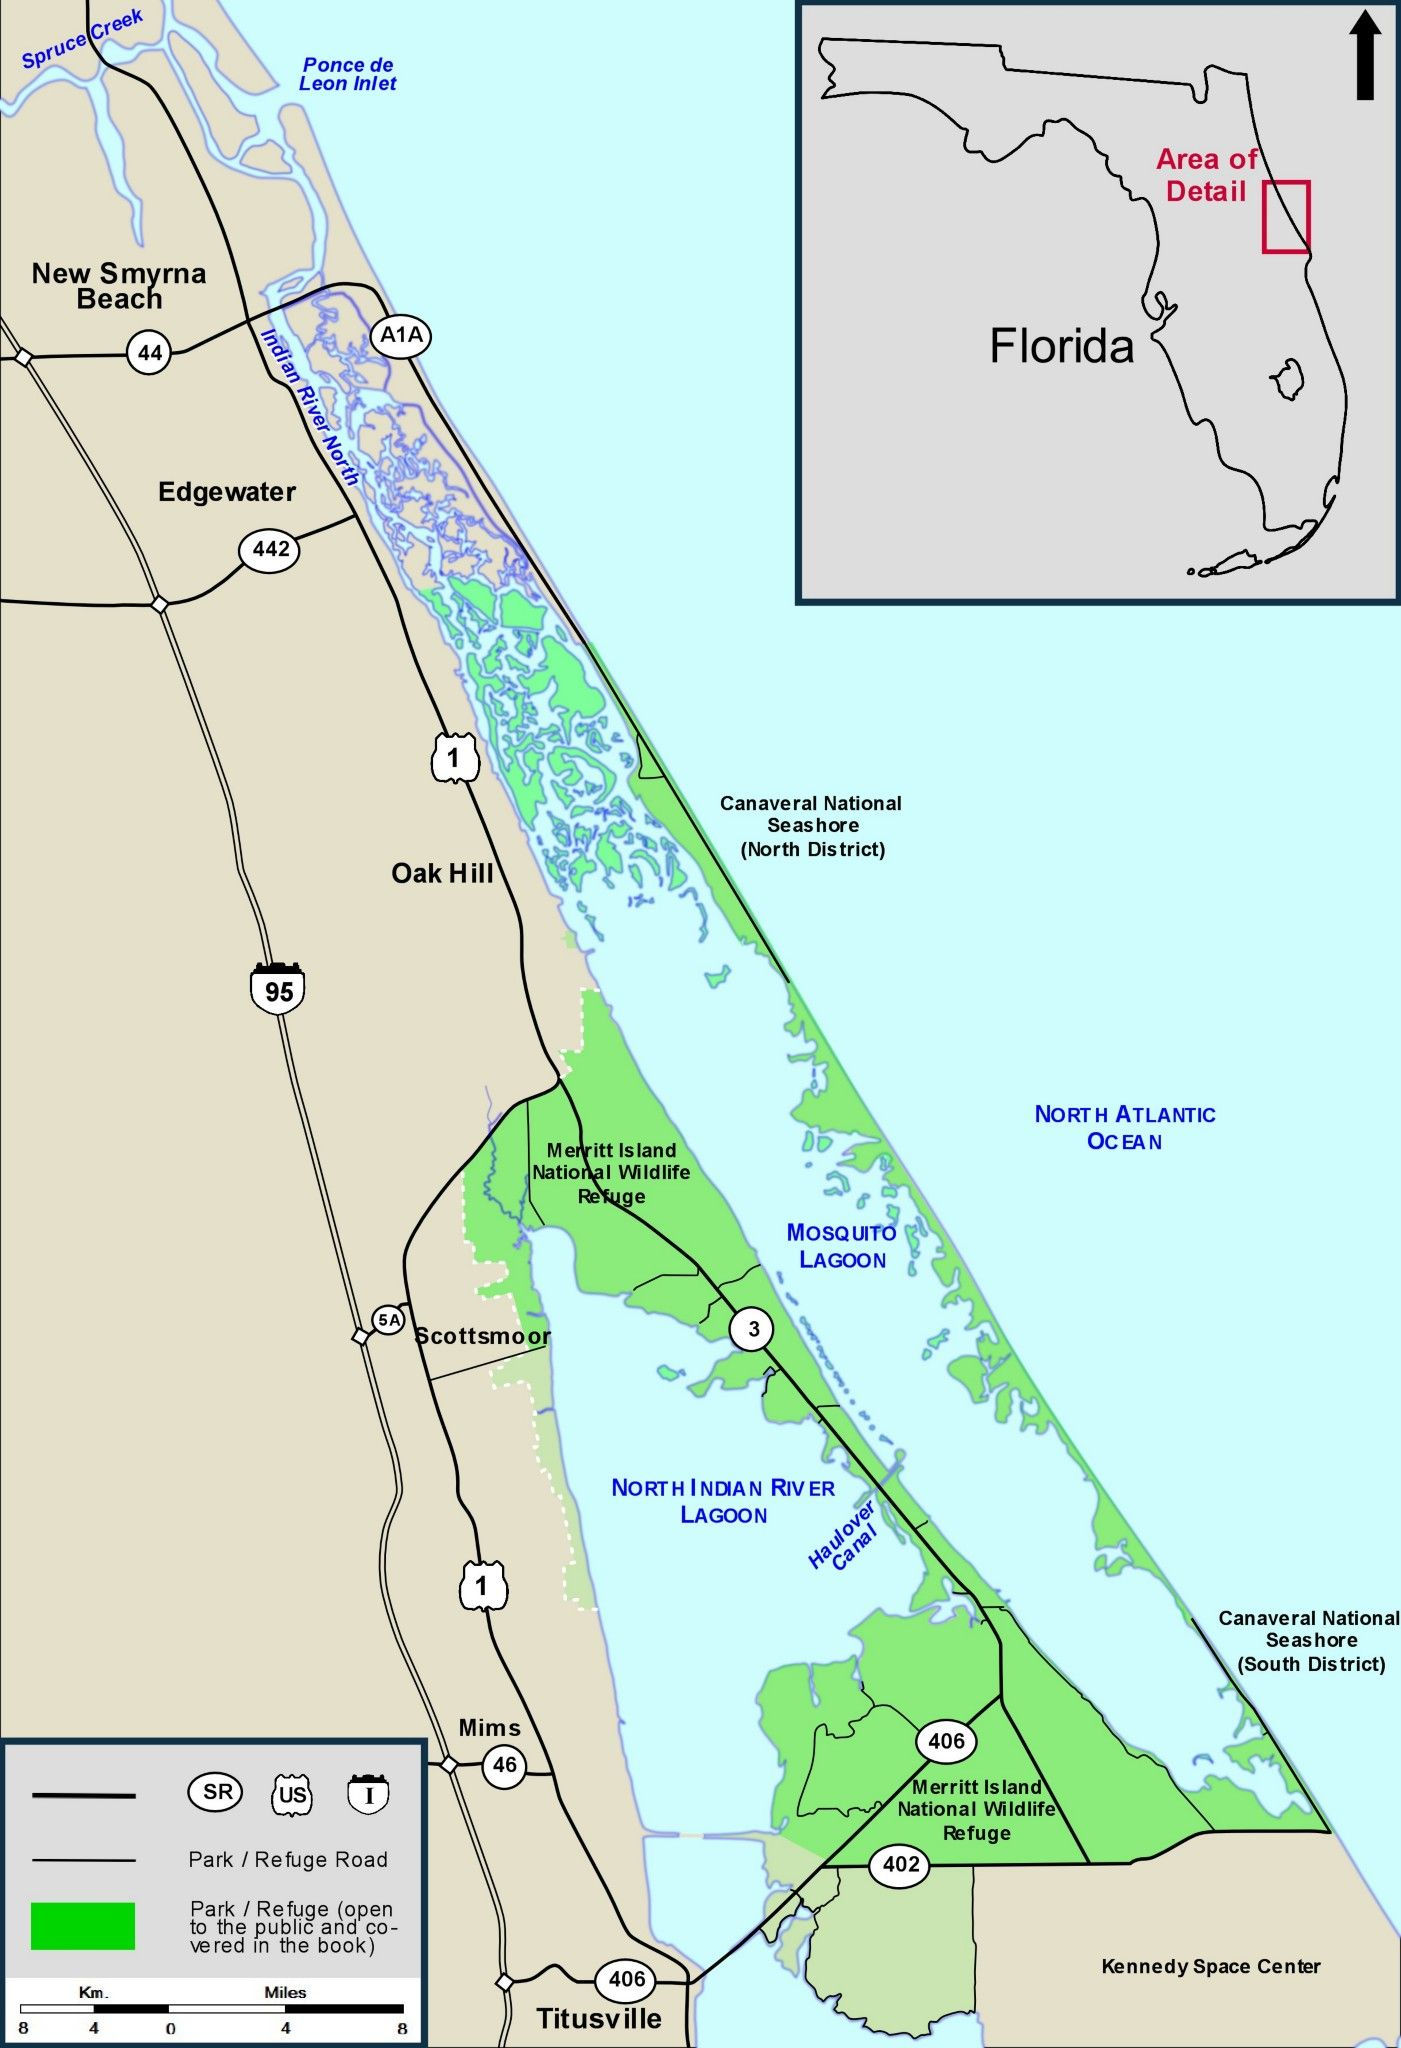 Map of Mosquito Lagoon and North Indian River Lagoon in East Central Indian Map Of Florida on map of pueblo indians, map of indian reservations in fl, map of the great plains indians, map of miccosukee, map of mohawk indians, map of united states indians, map of mexico indians, map of delaware indians, map of indian rocks beach, map indiana indians, map of southwest indians, map of cheyenne indians, map of northeastern indians, map of washington tribes, map of seminole indians, map of north america indians,